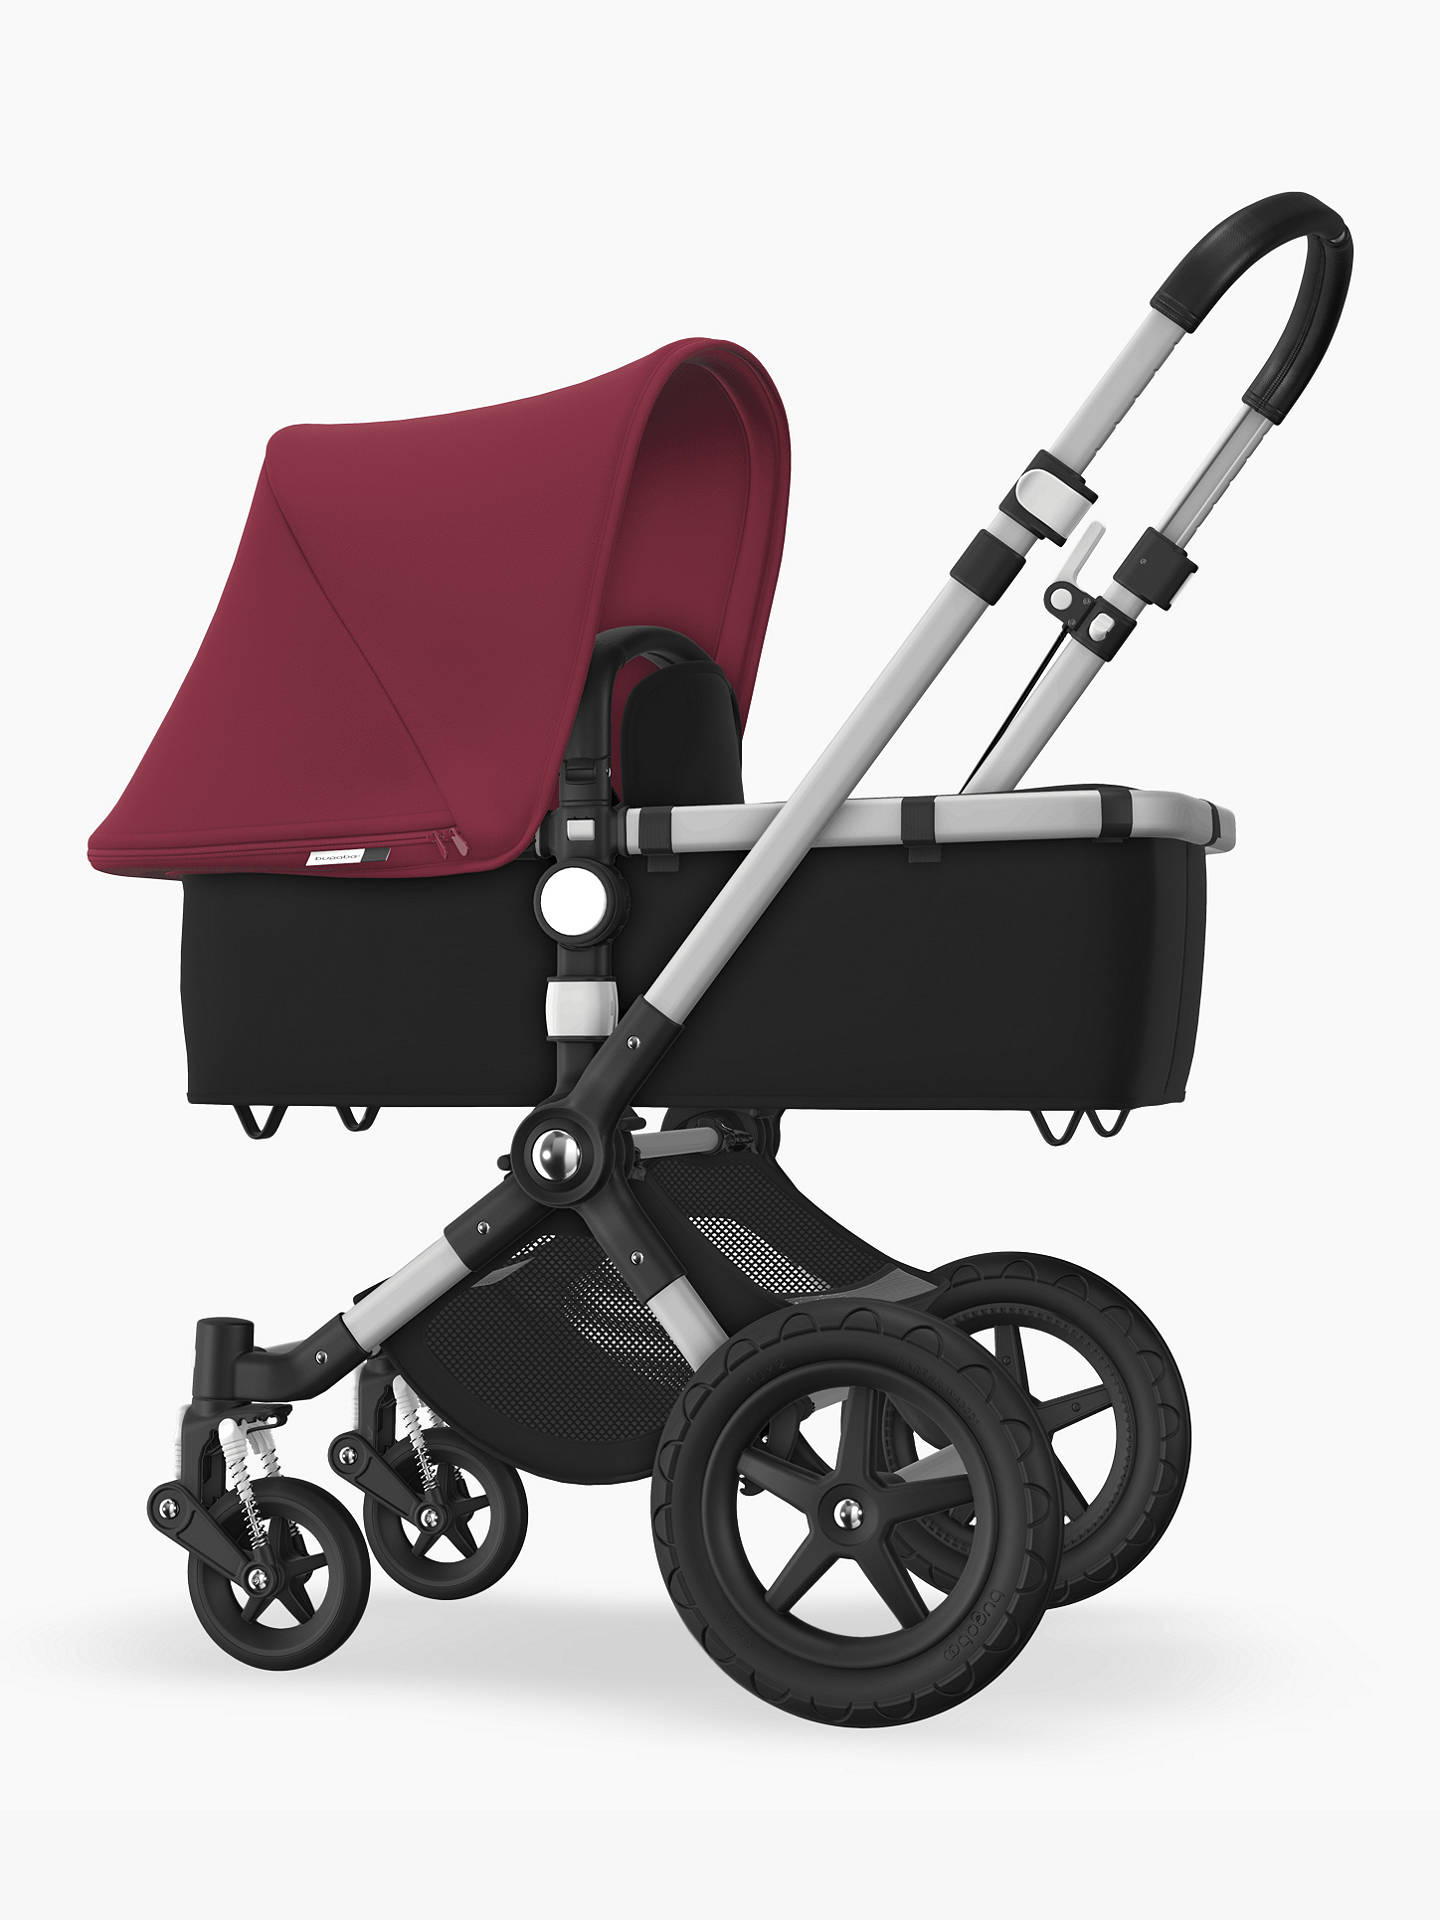 BuyBugaboo Cameleon3 Plus Complete Pushchair and Carrycot, Aluminium/Black with Ruby Red Sun Canopy Online at johnlewis.com